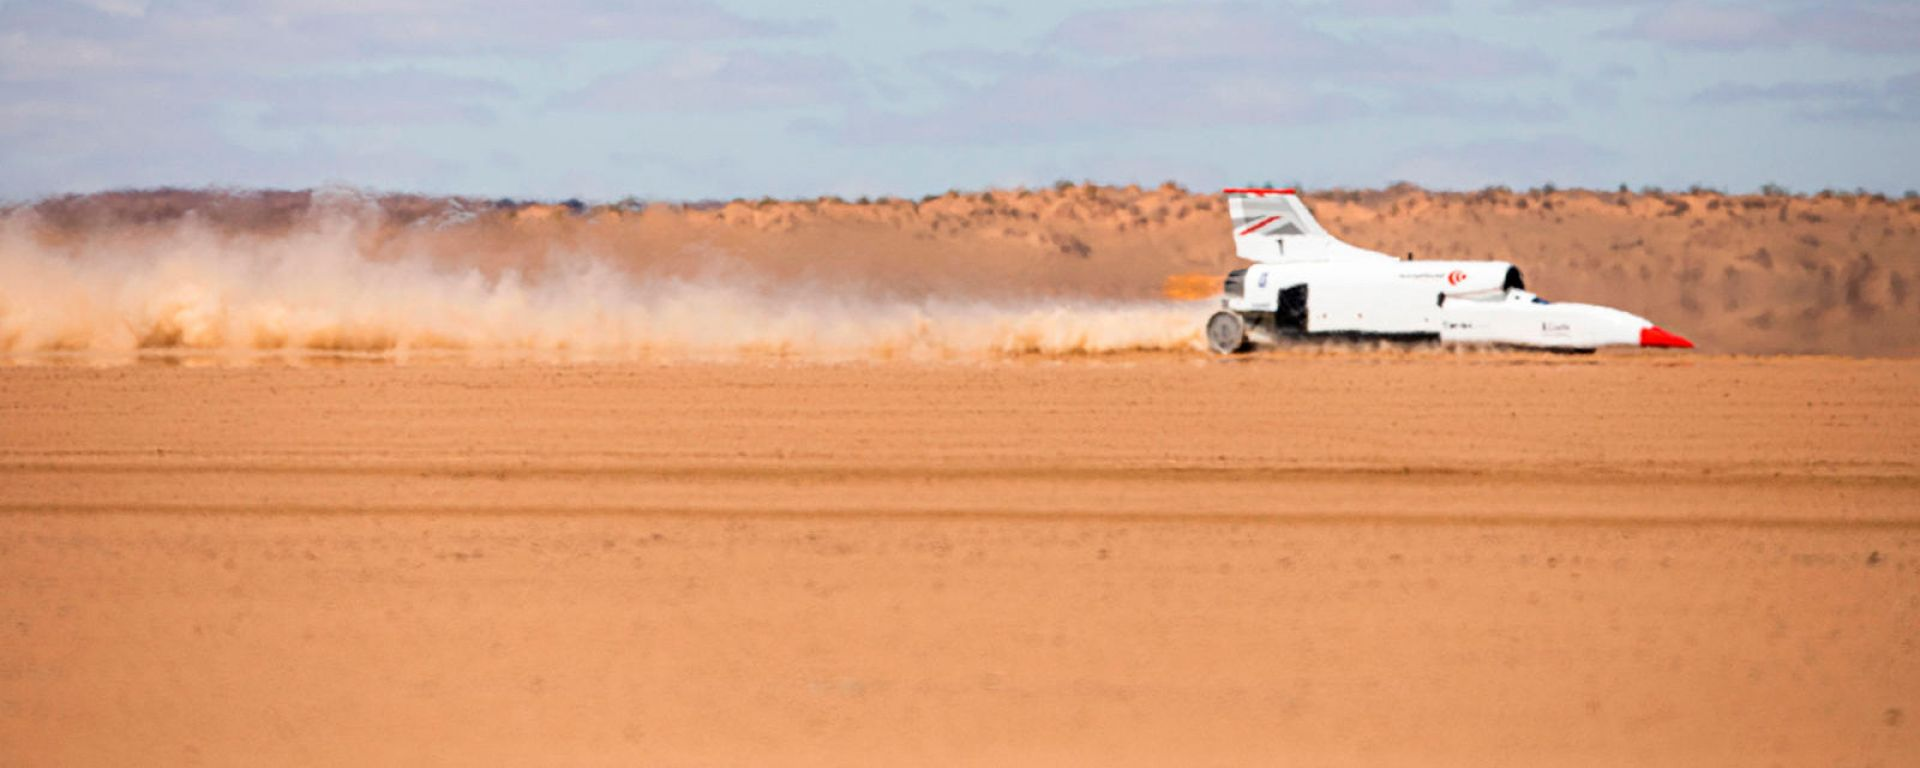 Bloodhound LSR Jet Car impegnata in Sud Africa